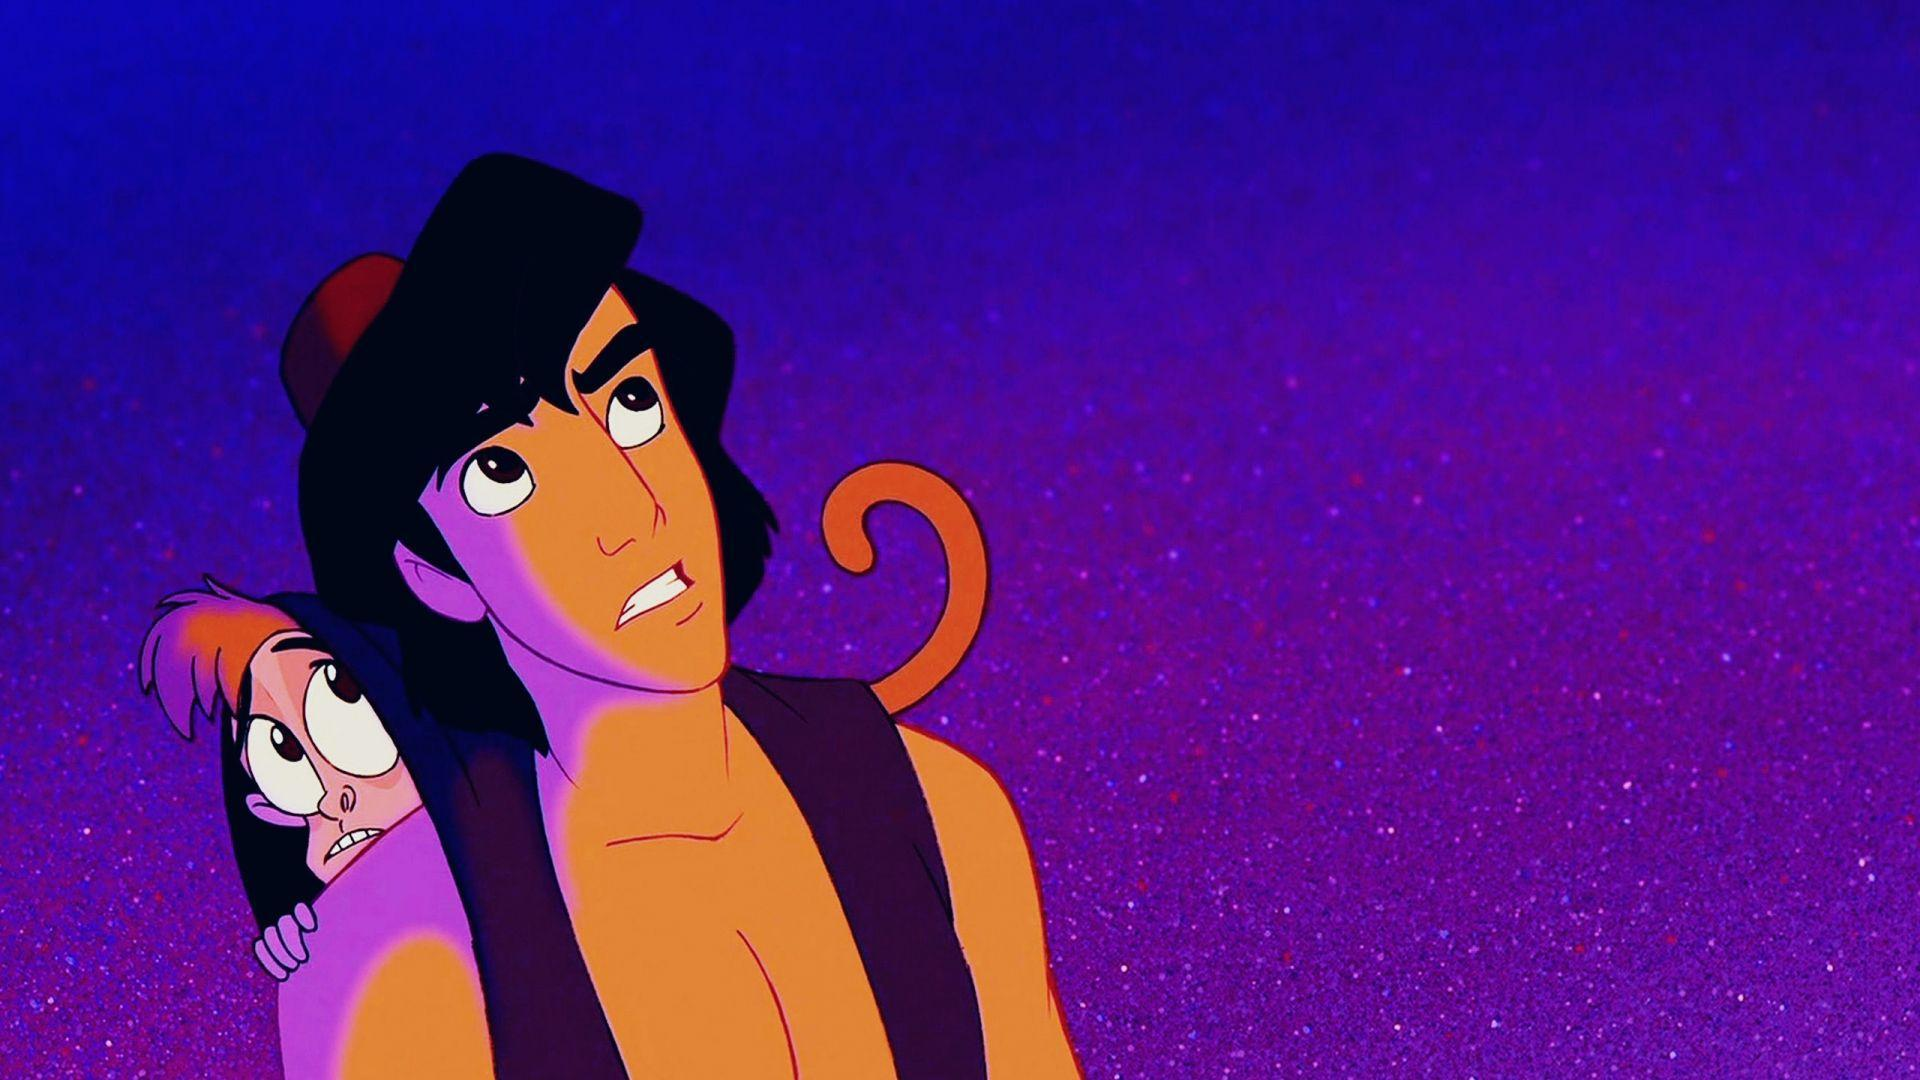 hd aladdin backgrounds download windows wallpapers smart phone ...